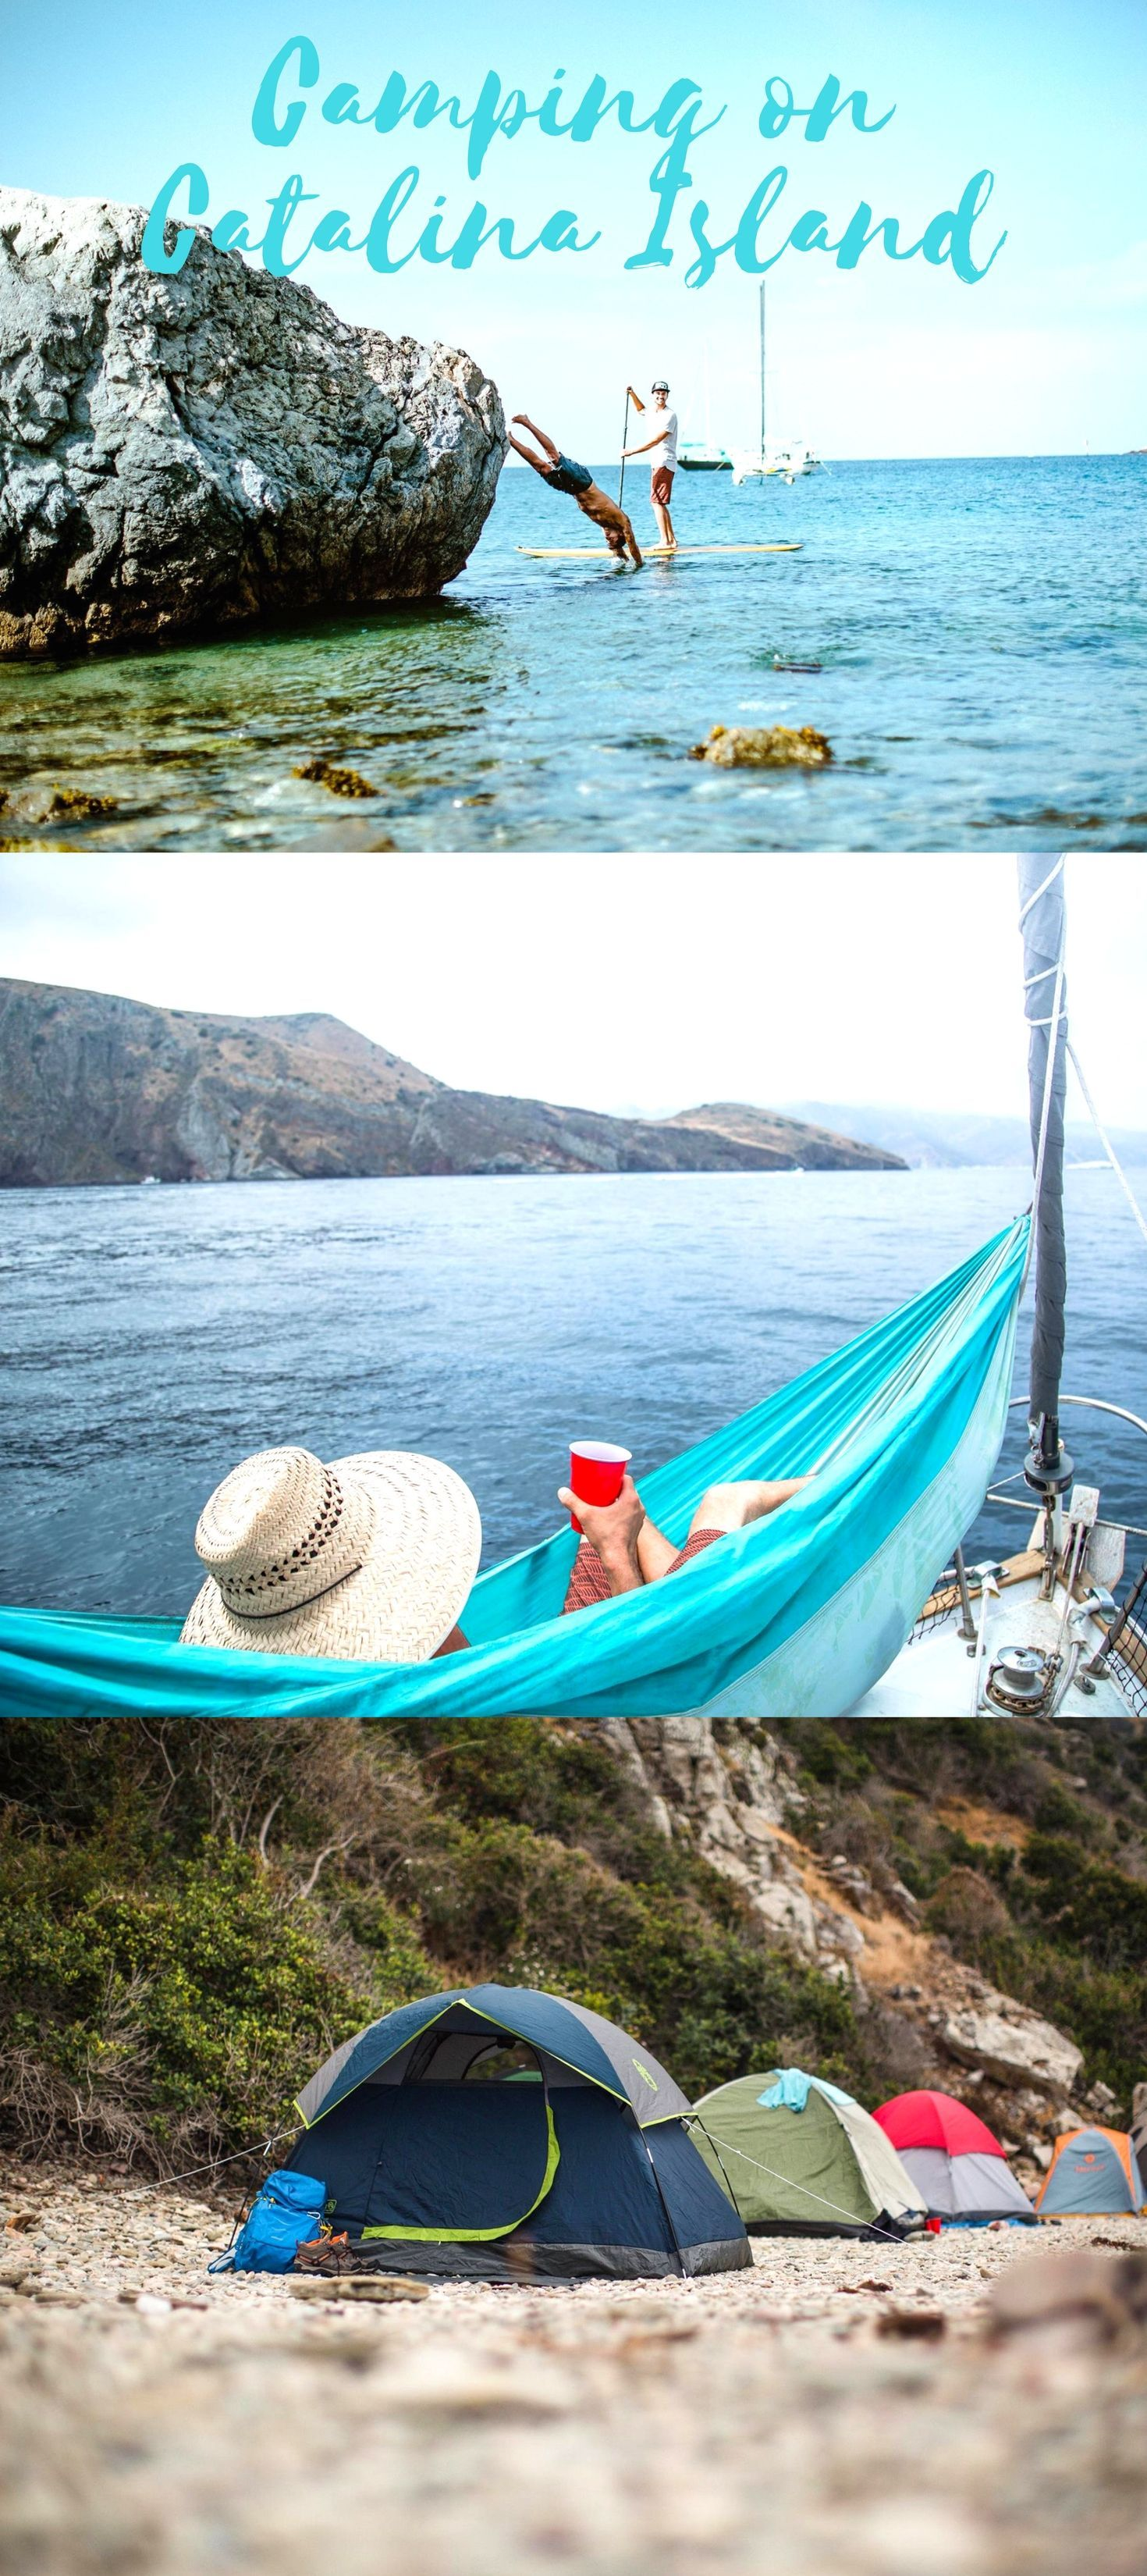 How to rent your own private boatin only campgrounds on